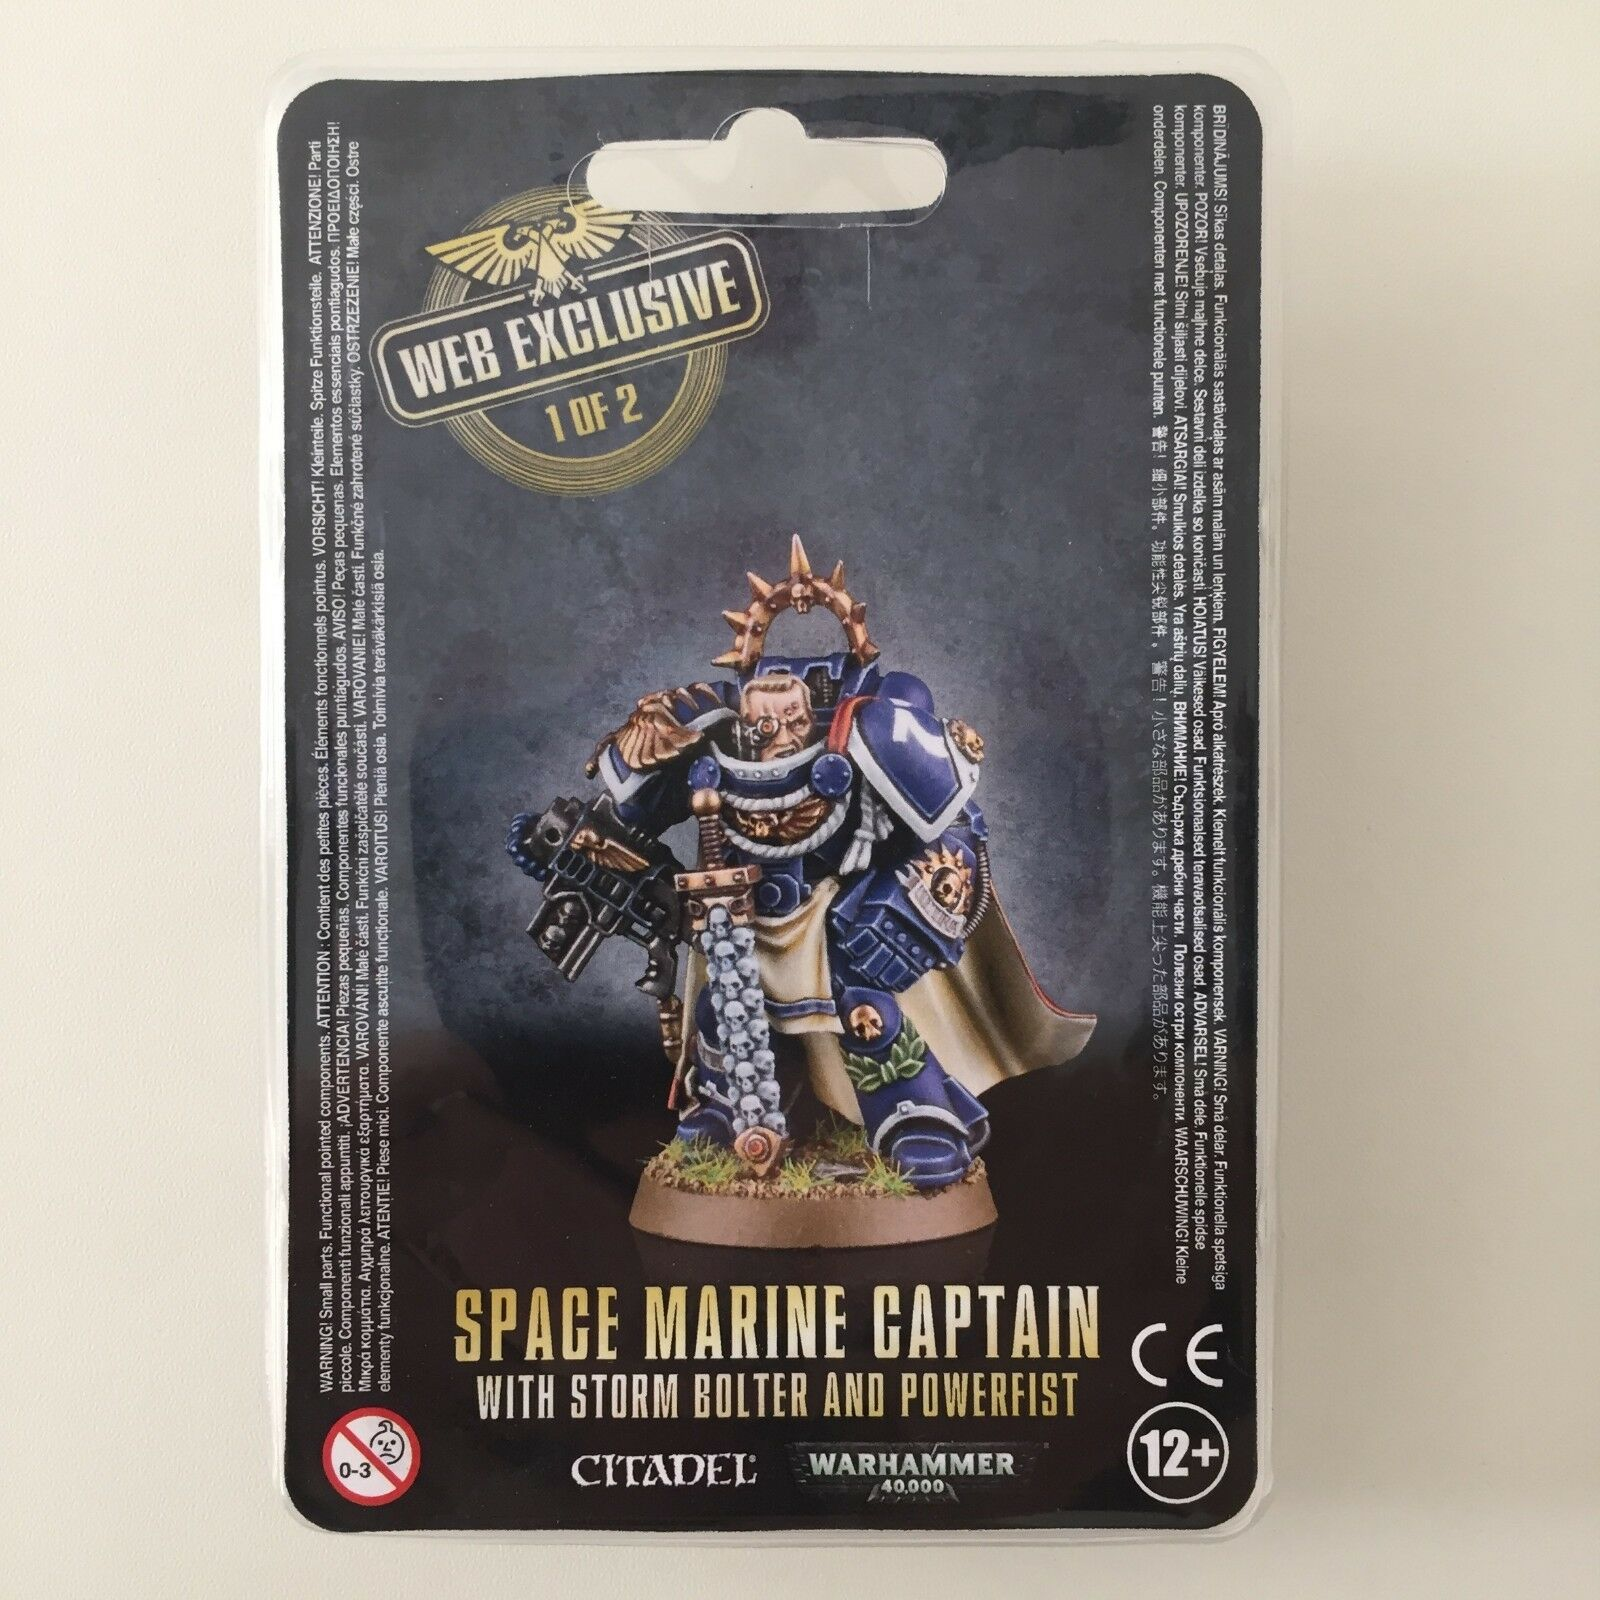 SPACE MARINE CAPTAIN WITH STORM BOLTER AND POWERFIST WEB EXCLUSIVE 40K RED 543